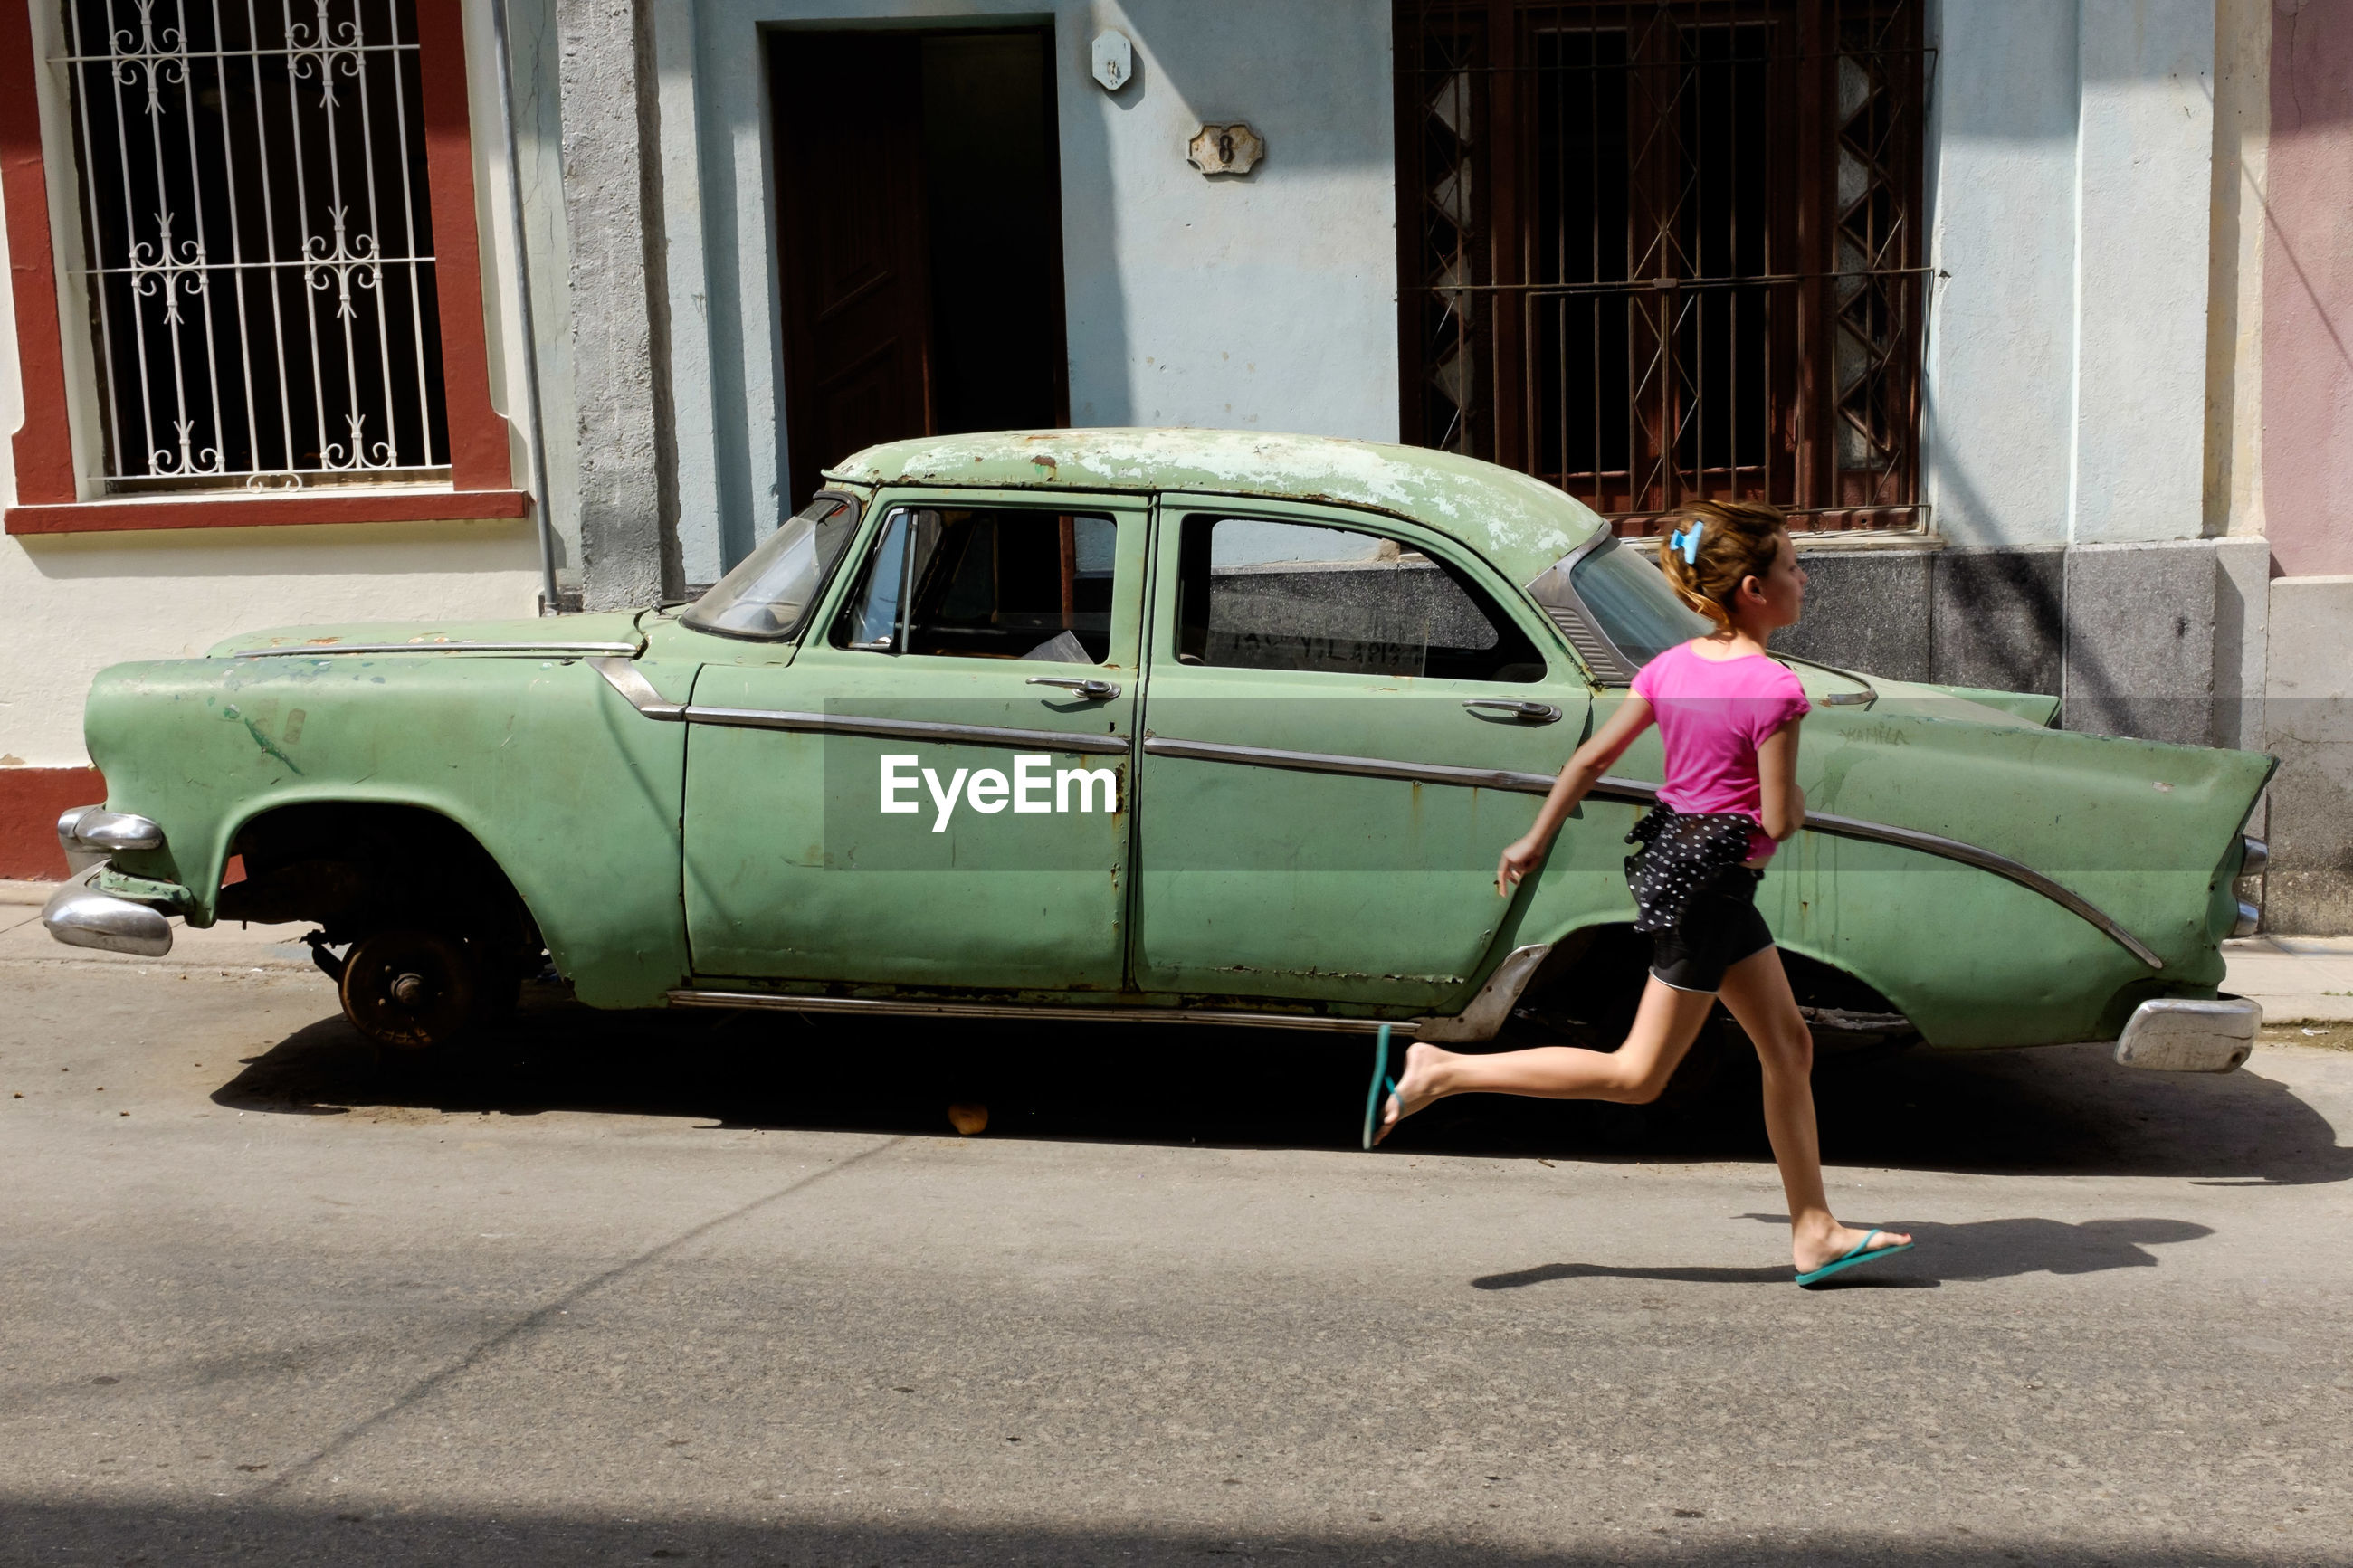 REAR VIEW OF WOMAN ON STREET AGAINST CAR